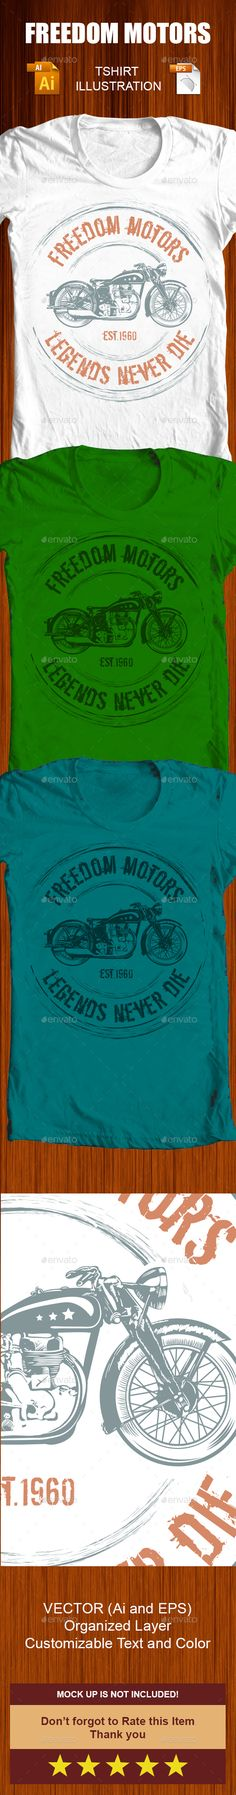 Freedom Motors Tshirt Illustration Template Vector EPS, AI. Download here: http://graphicriver.net/item/freedom-motors-tshirt-illustration-/14118319?ref=ksioks